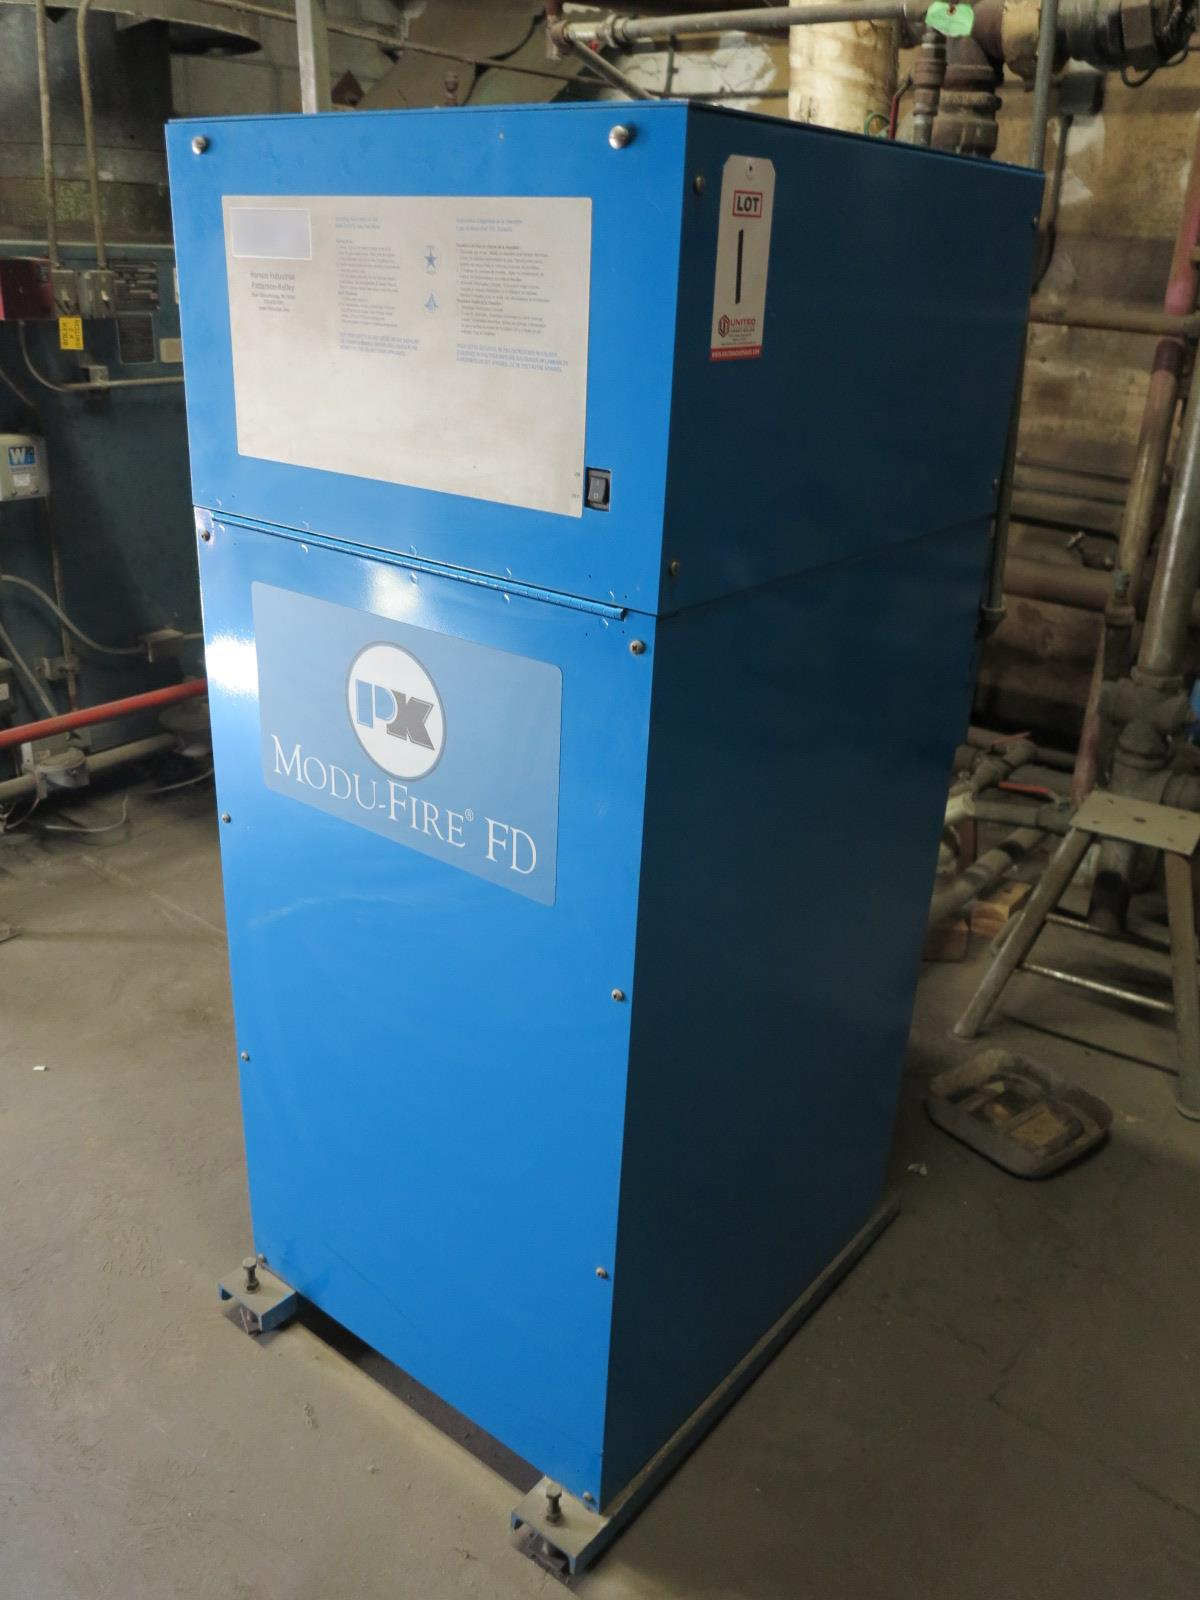 Lot 1 - PATTERSON-KELLY MUDO-FIRED FD NATURAL GAS BOILER (DELAYED PICKUP 8-11-18)